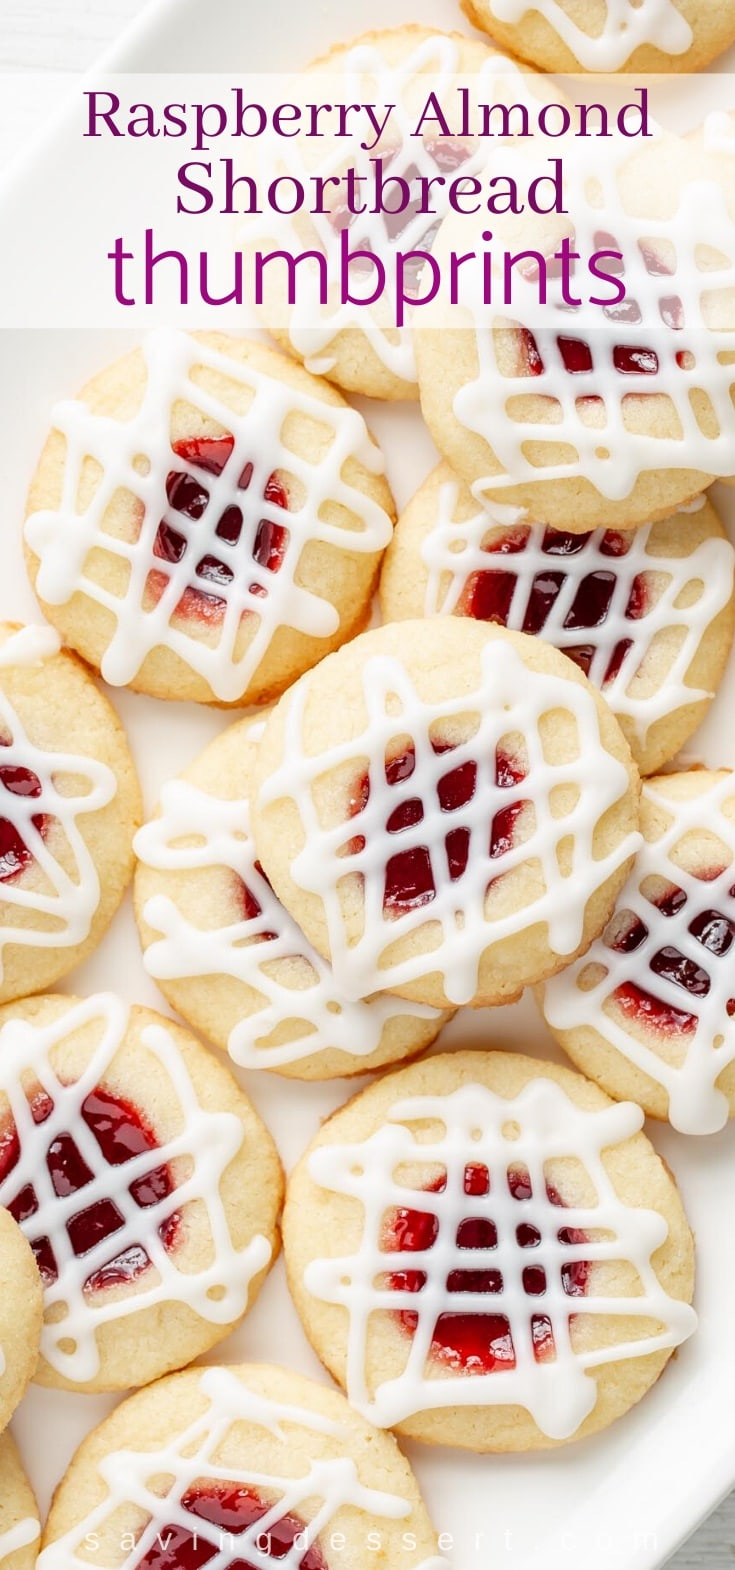 A platter of raspberry jam filled cookies topped with a drizzle of icing